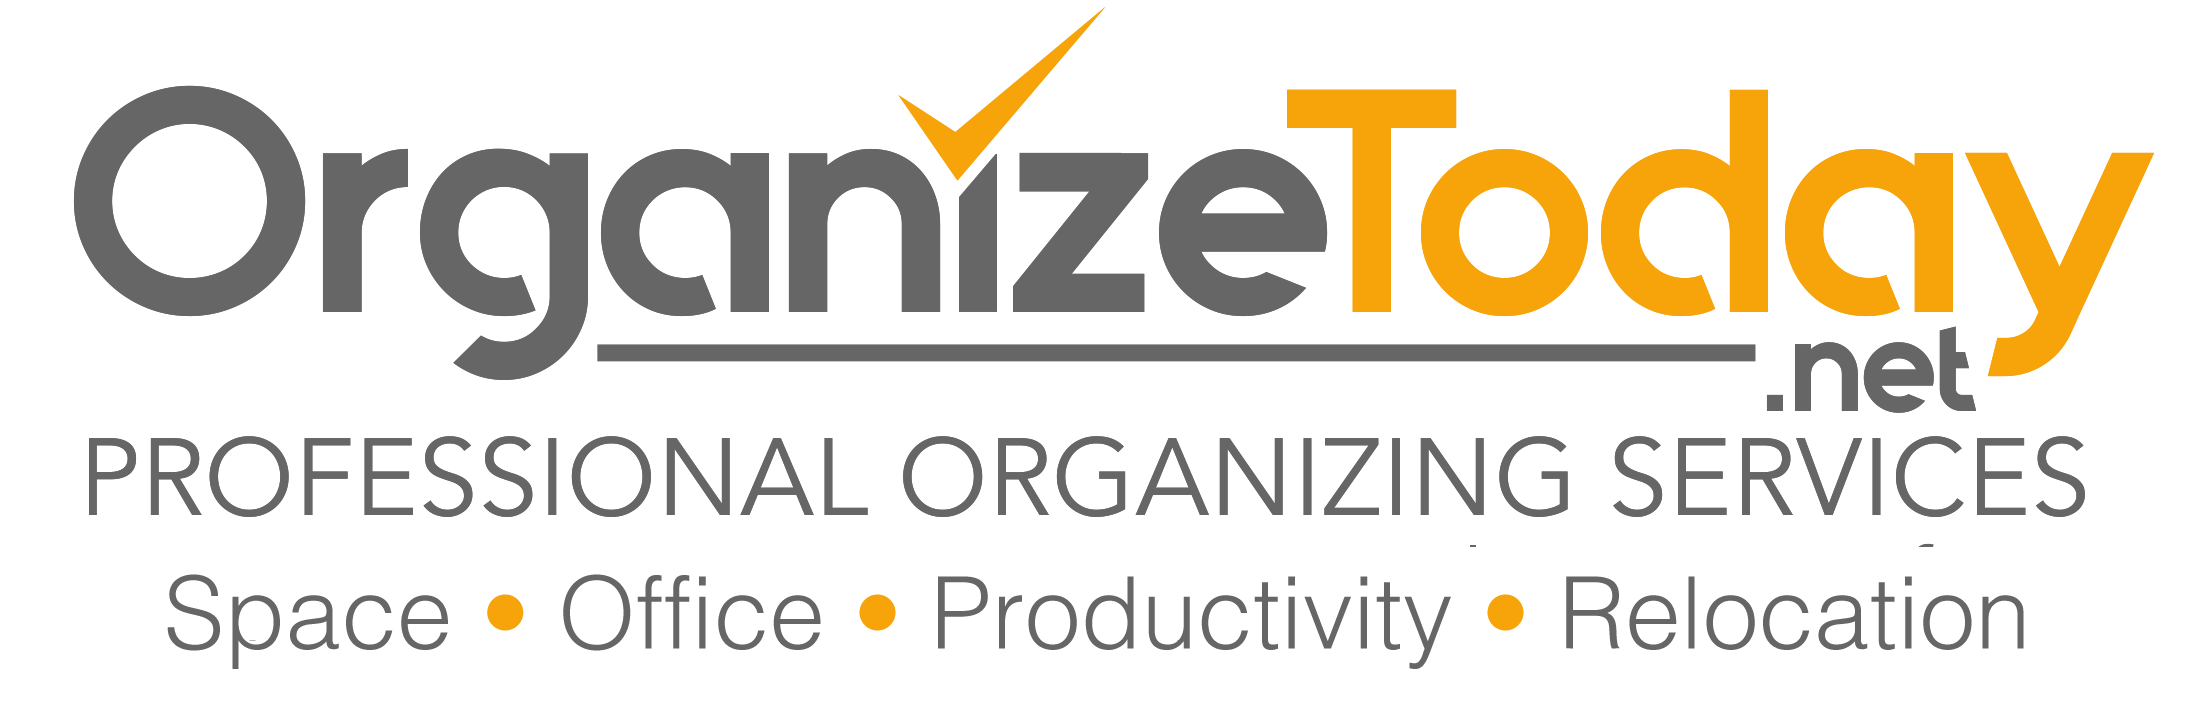 Organize-today-logo-2.png